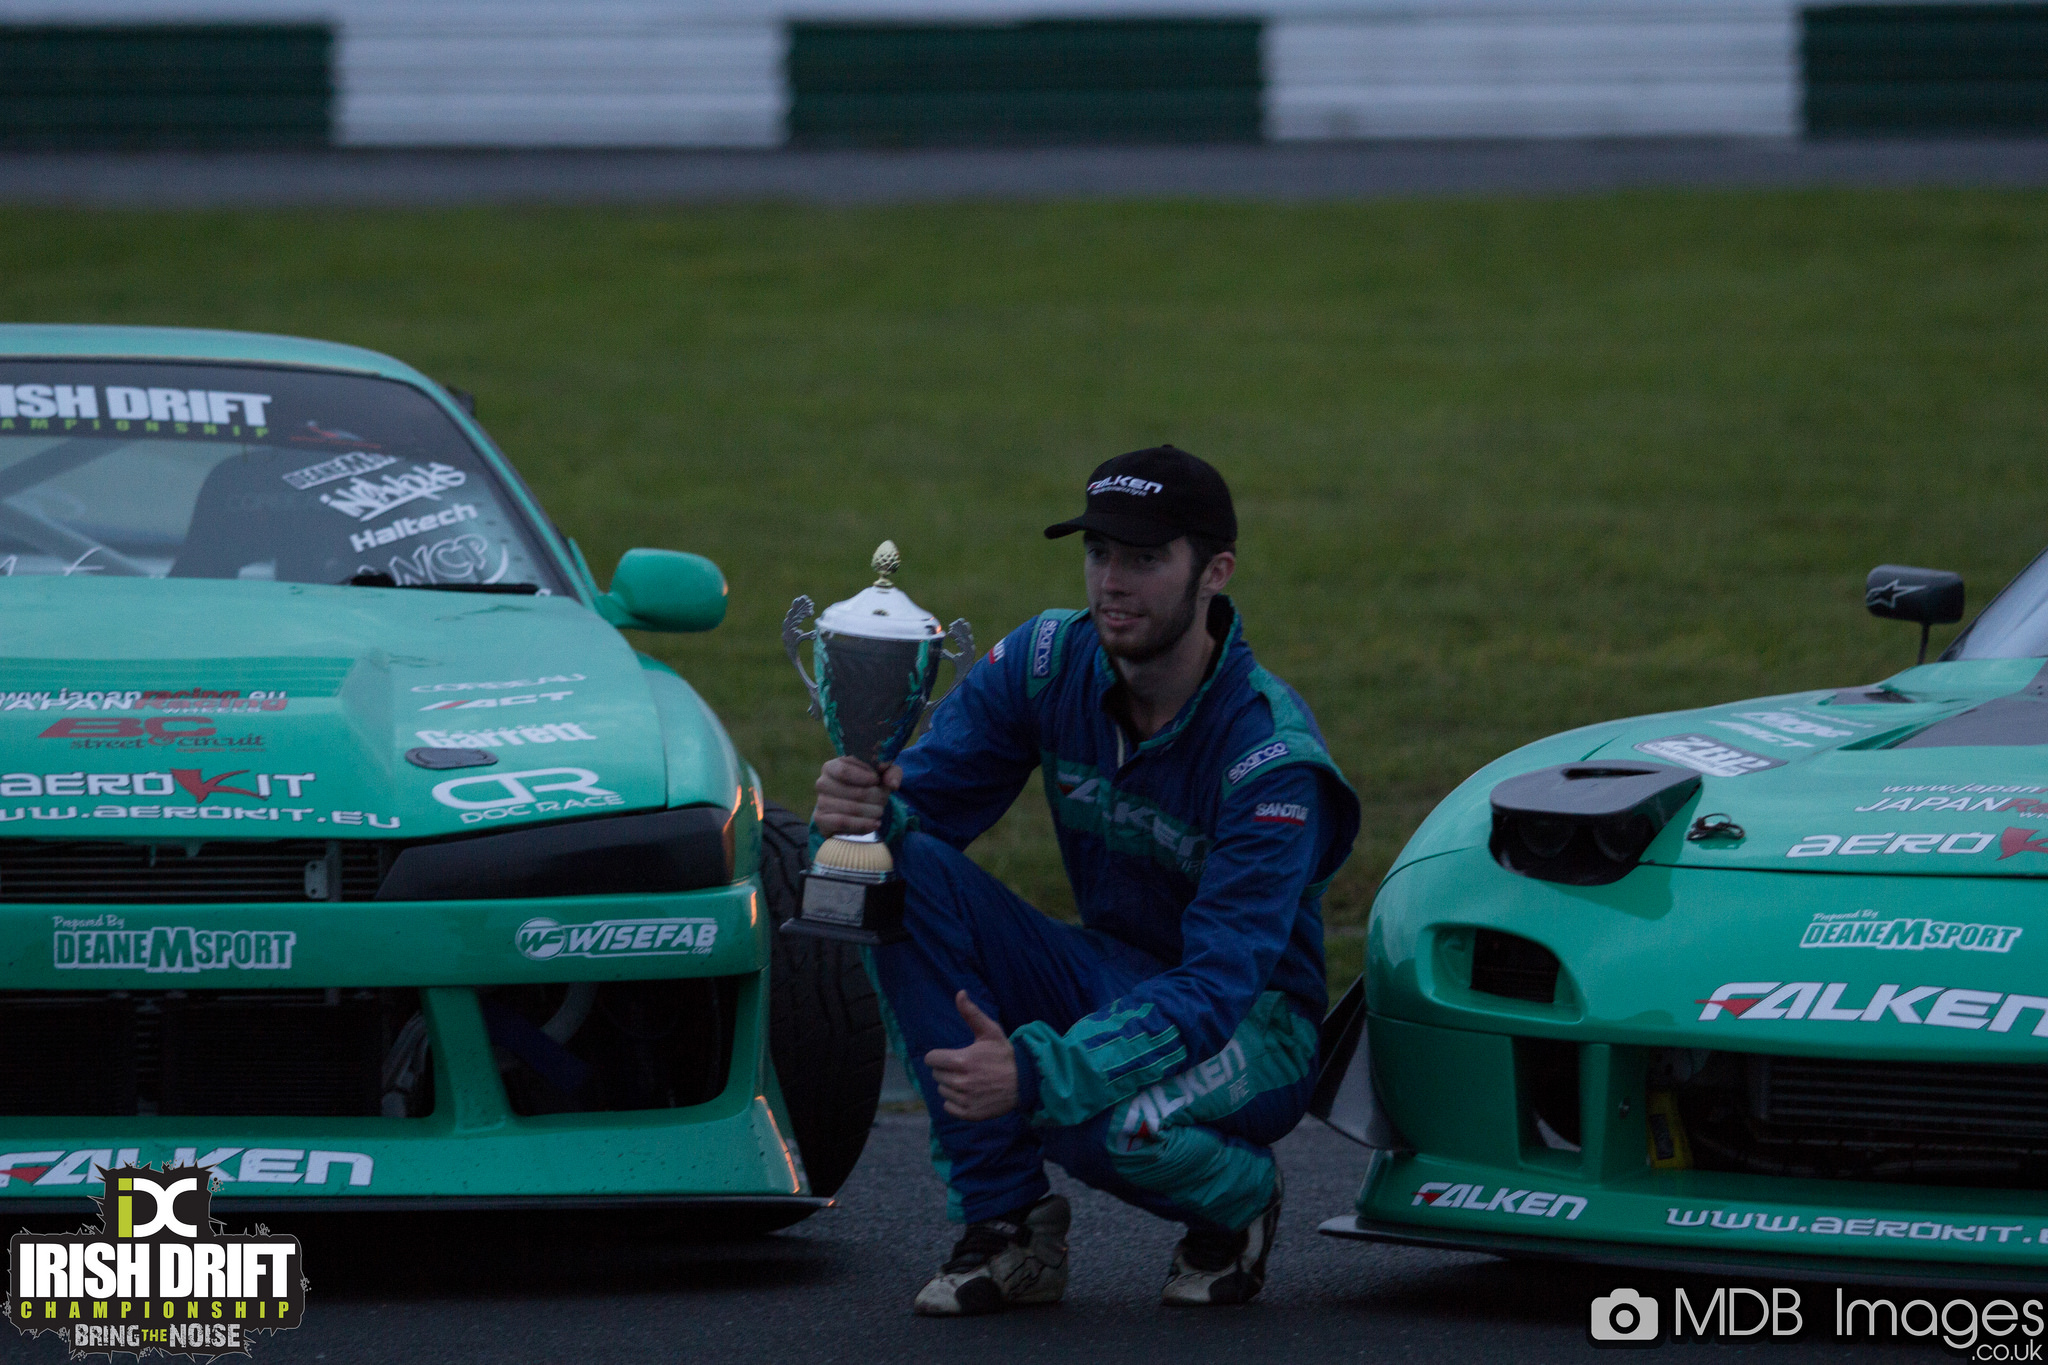 James Deane, bild från Irisch Drift Championship